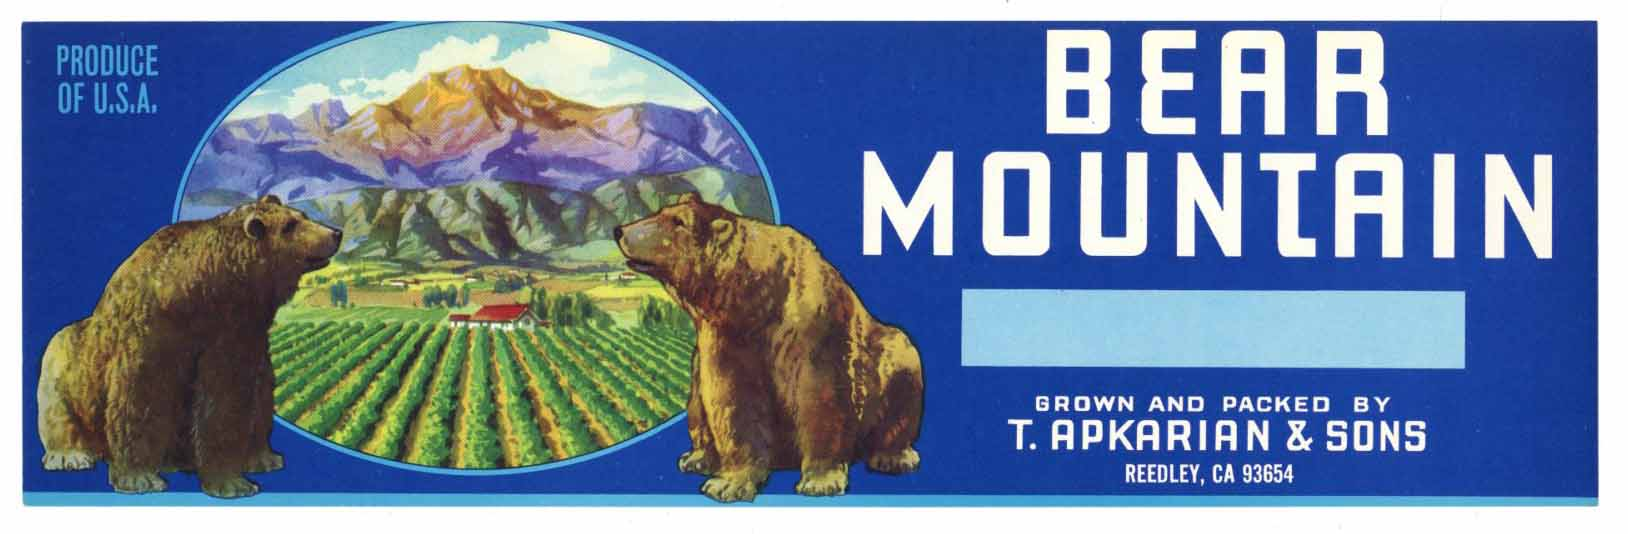 BEAR MOUNTAIN Brand Vintage Fruit Crate Label (LL136)